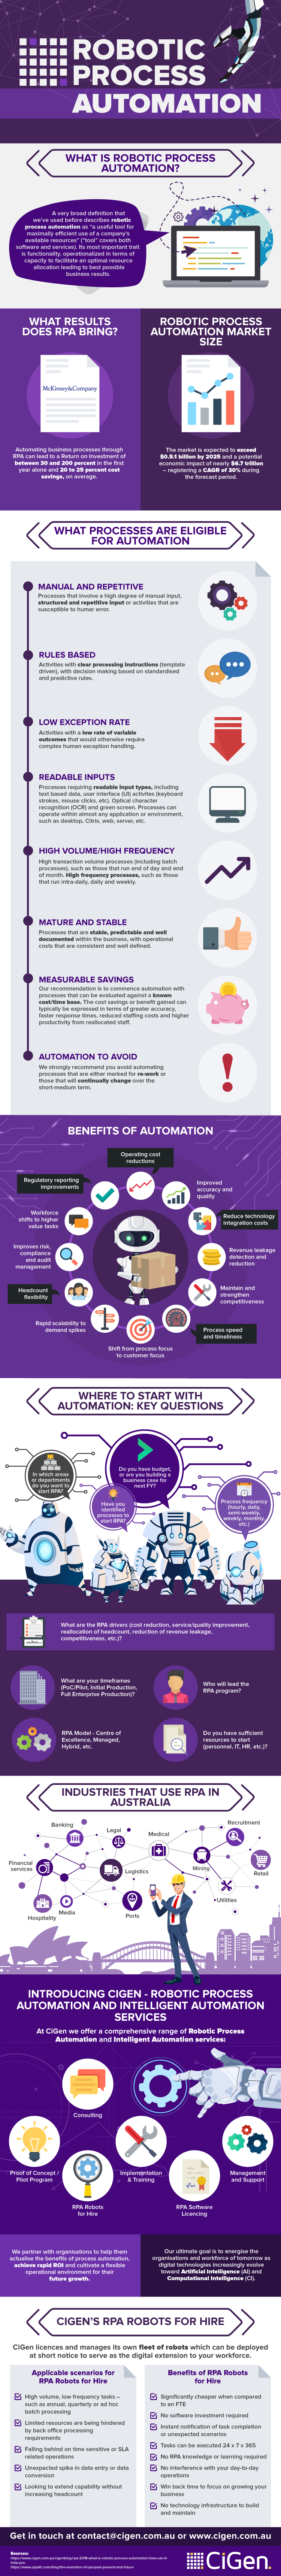 What to Expect From Robotic Process Automation in 2019 [Infographic]